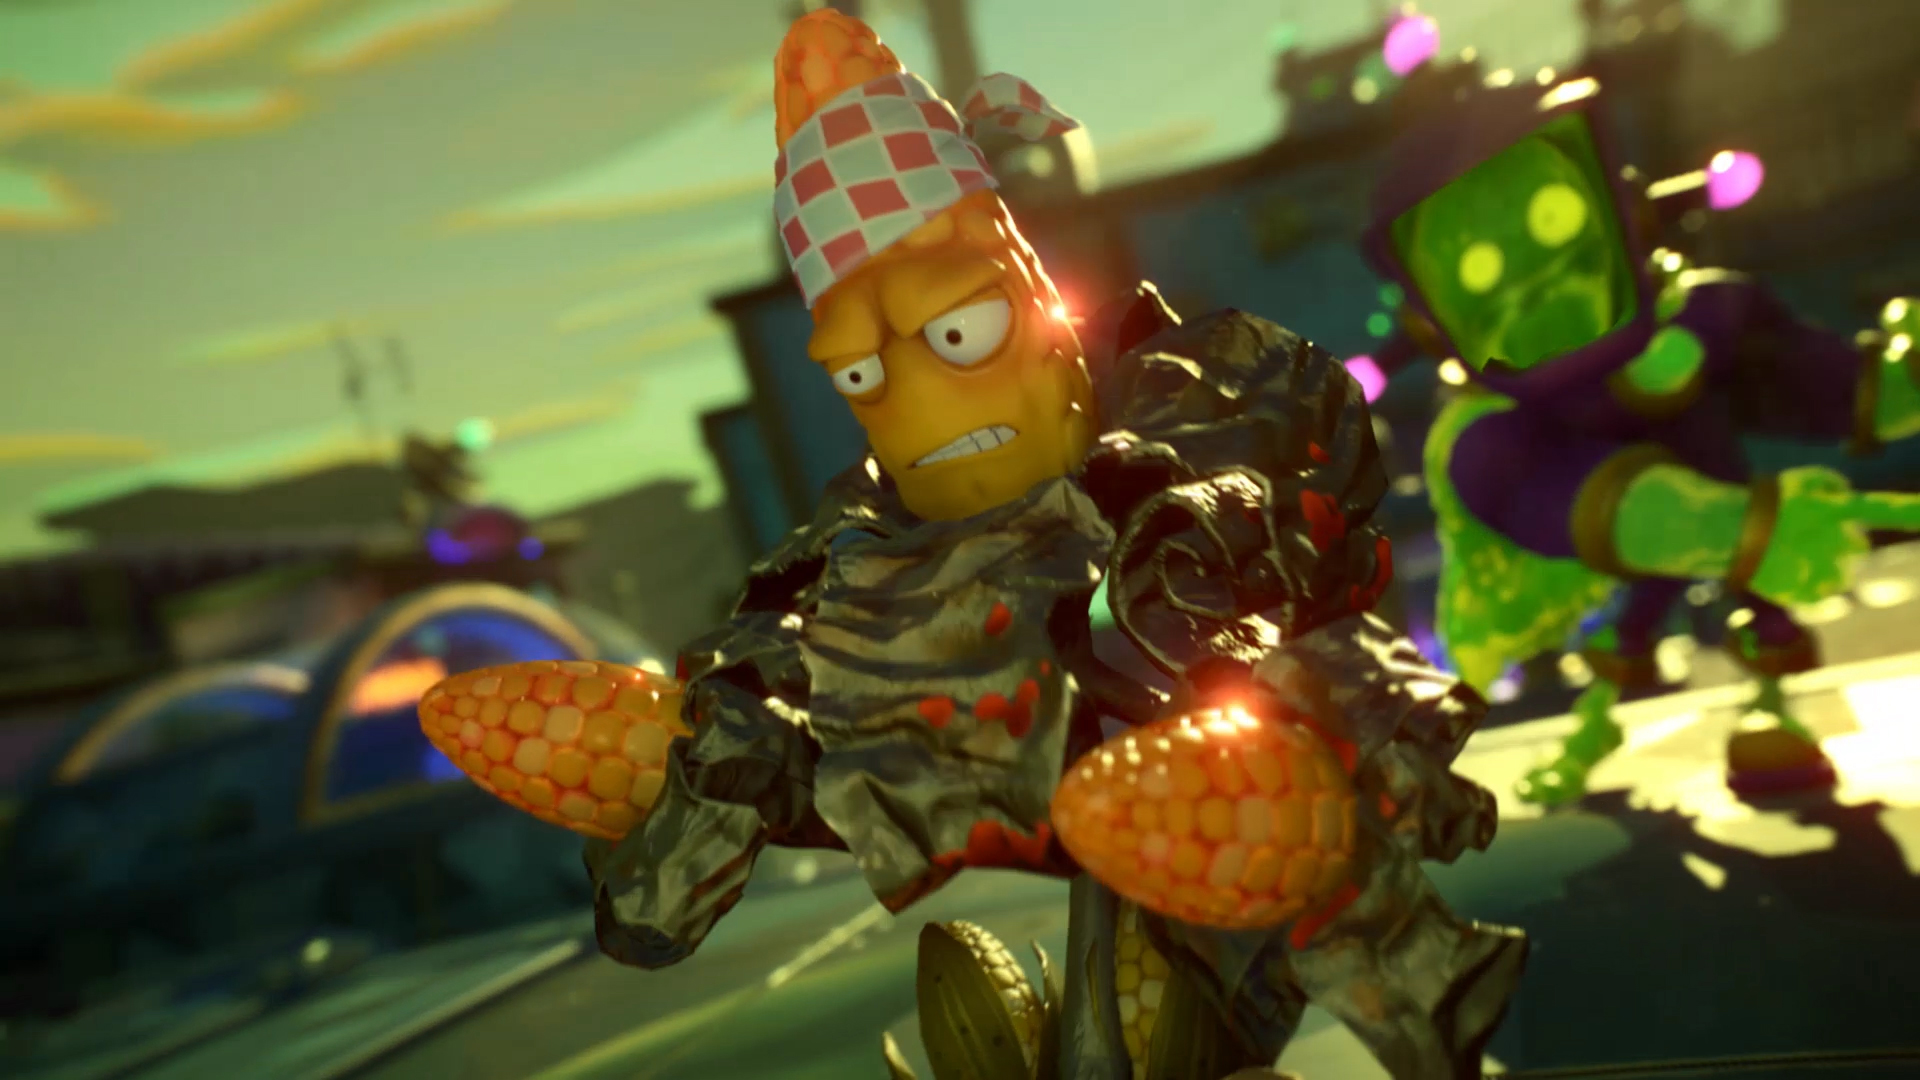 Top 3 plants vs zombies garden warfare 2 videos of the week Plants vs zombies garden warfare 2 event calendar